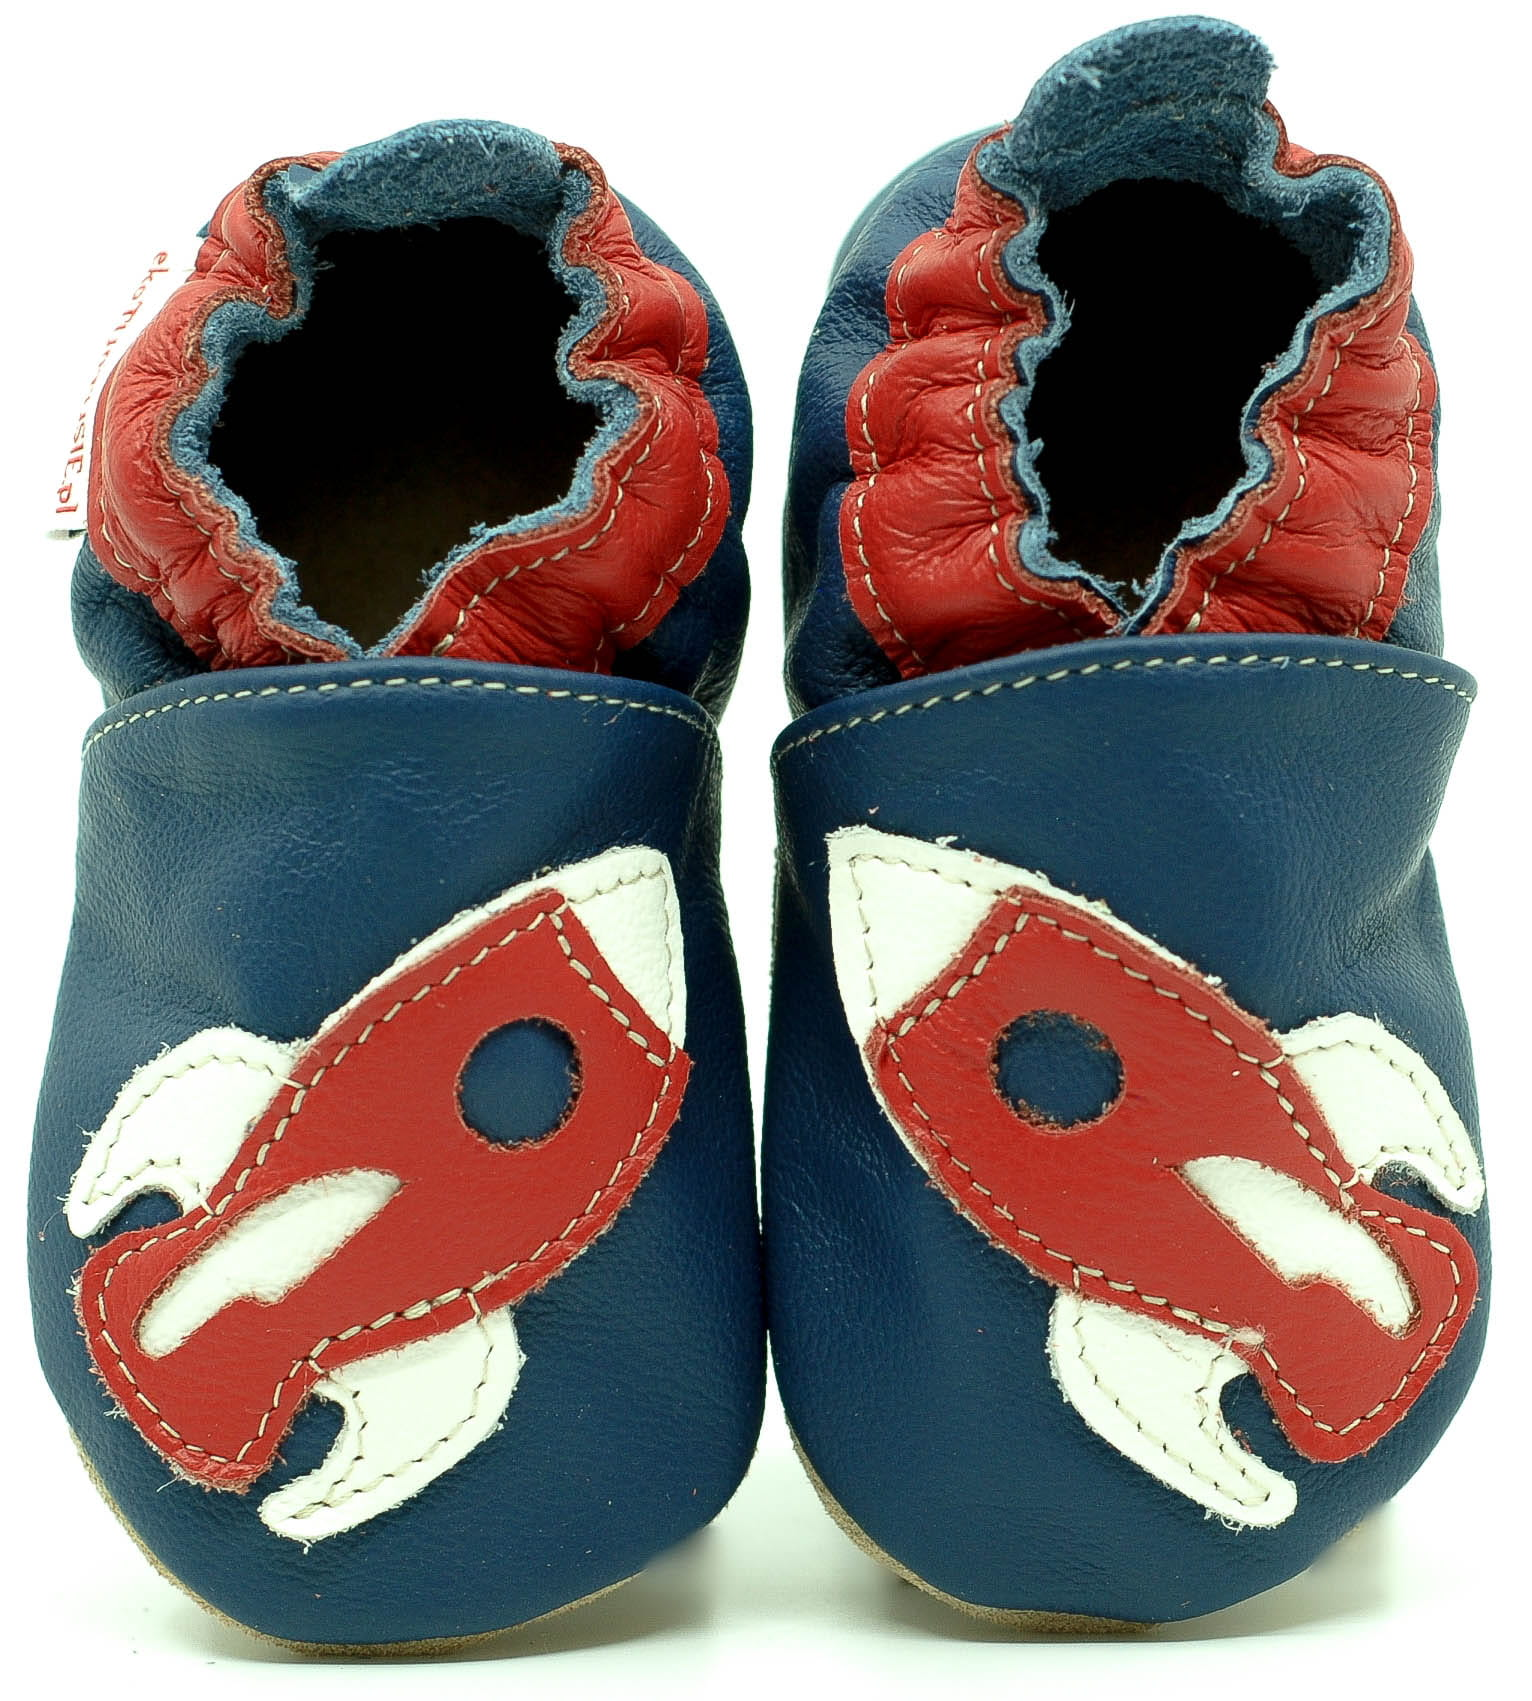 348e8165830 Soft Sole Baby Shoes RED ROCKET ON NAVY BLUE FIORINO Mother & Child ...